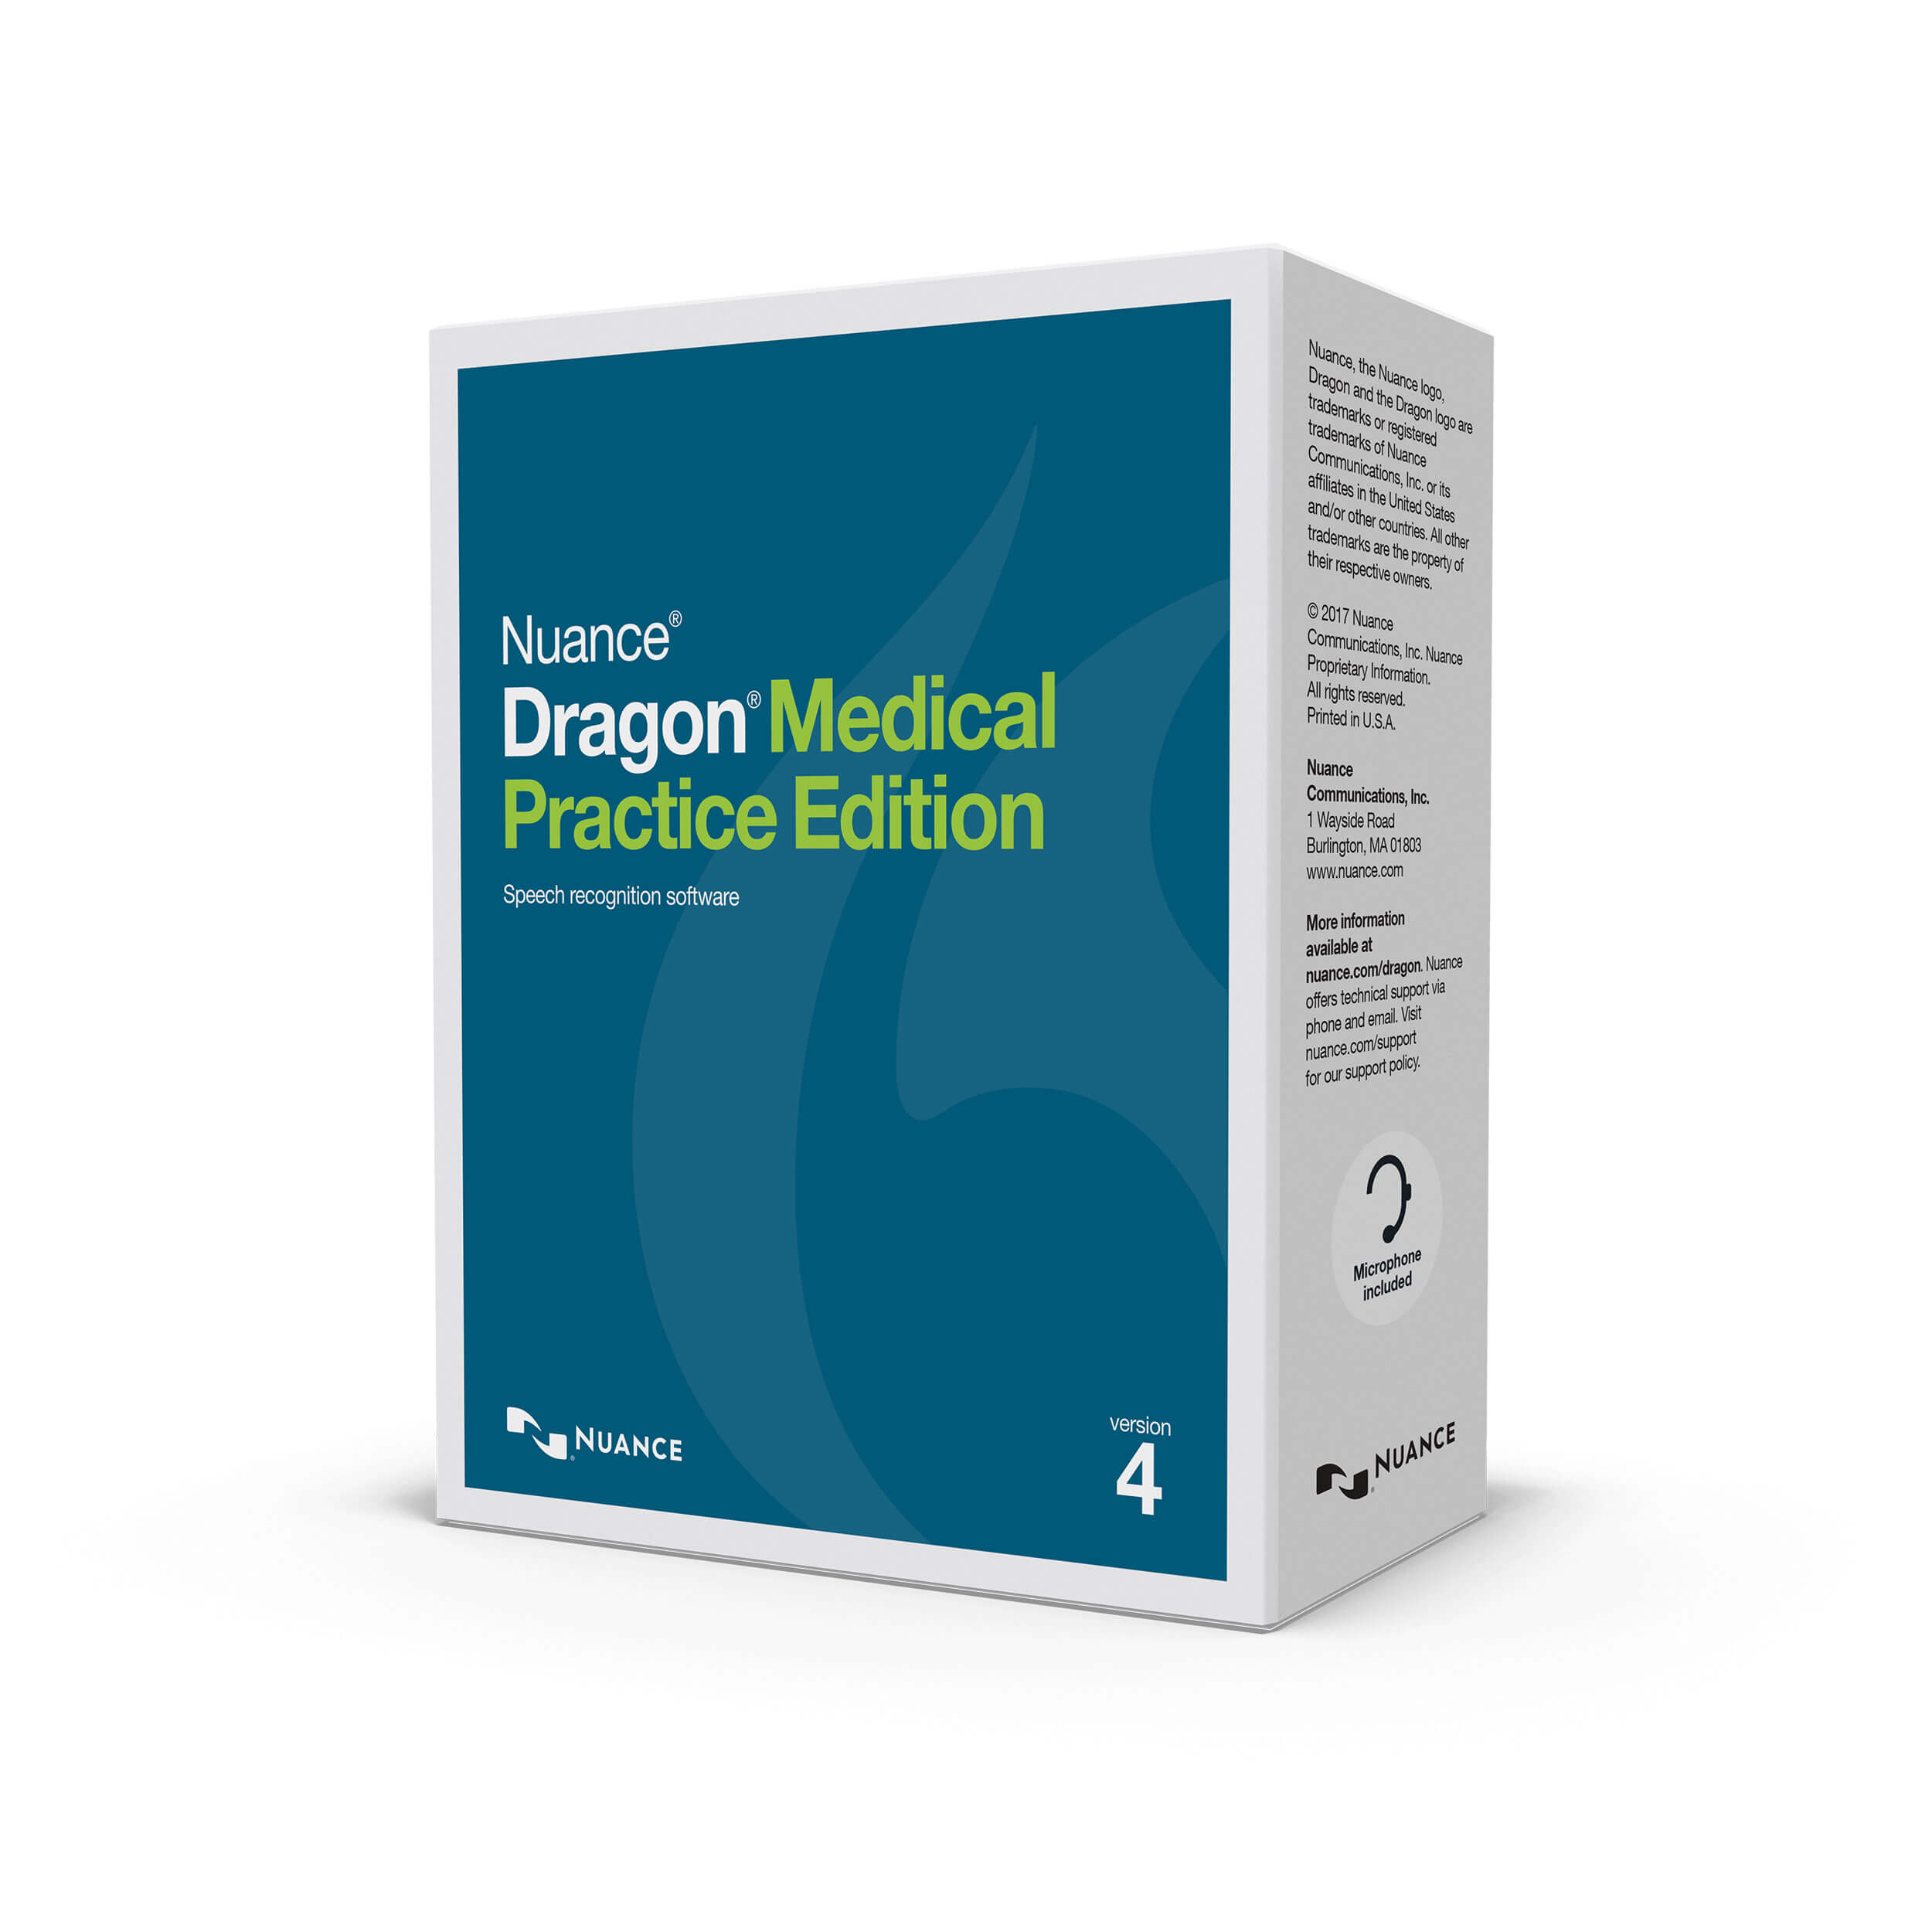 Nuance Dragon Medical Practice Edition 4 builds on the previous edition's proven strengths and techniques. With over500,000 physicians using our software worldwide, Nuance Dragon Medical Practice is the most widely used speech recognition software in the industry. With this new upgrade, clinicians and physicians can expect to enjoy a more productive work environment, thanks to an array of new features. -